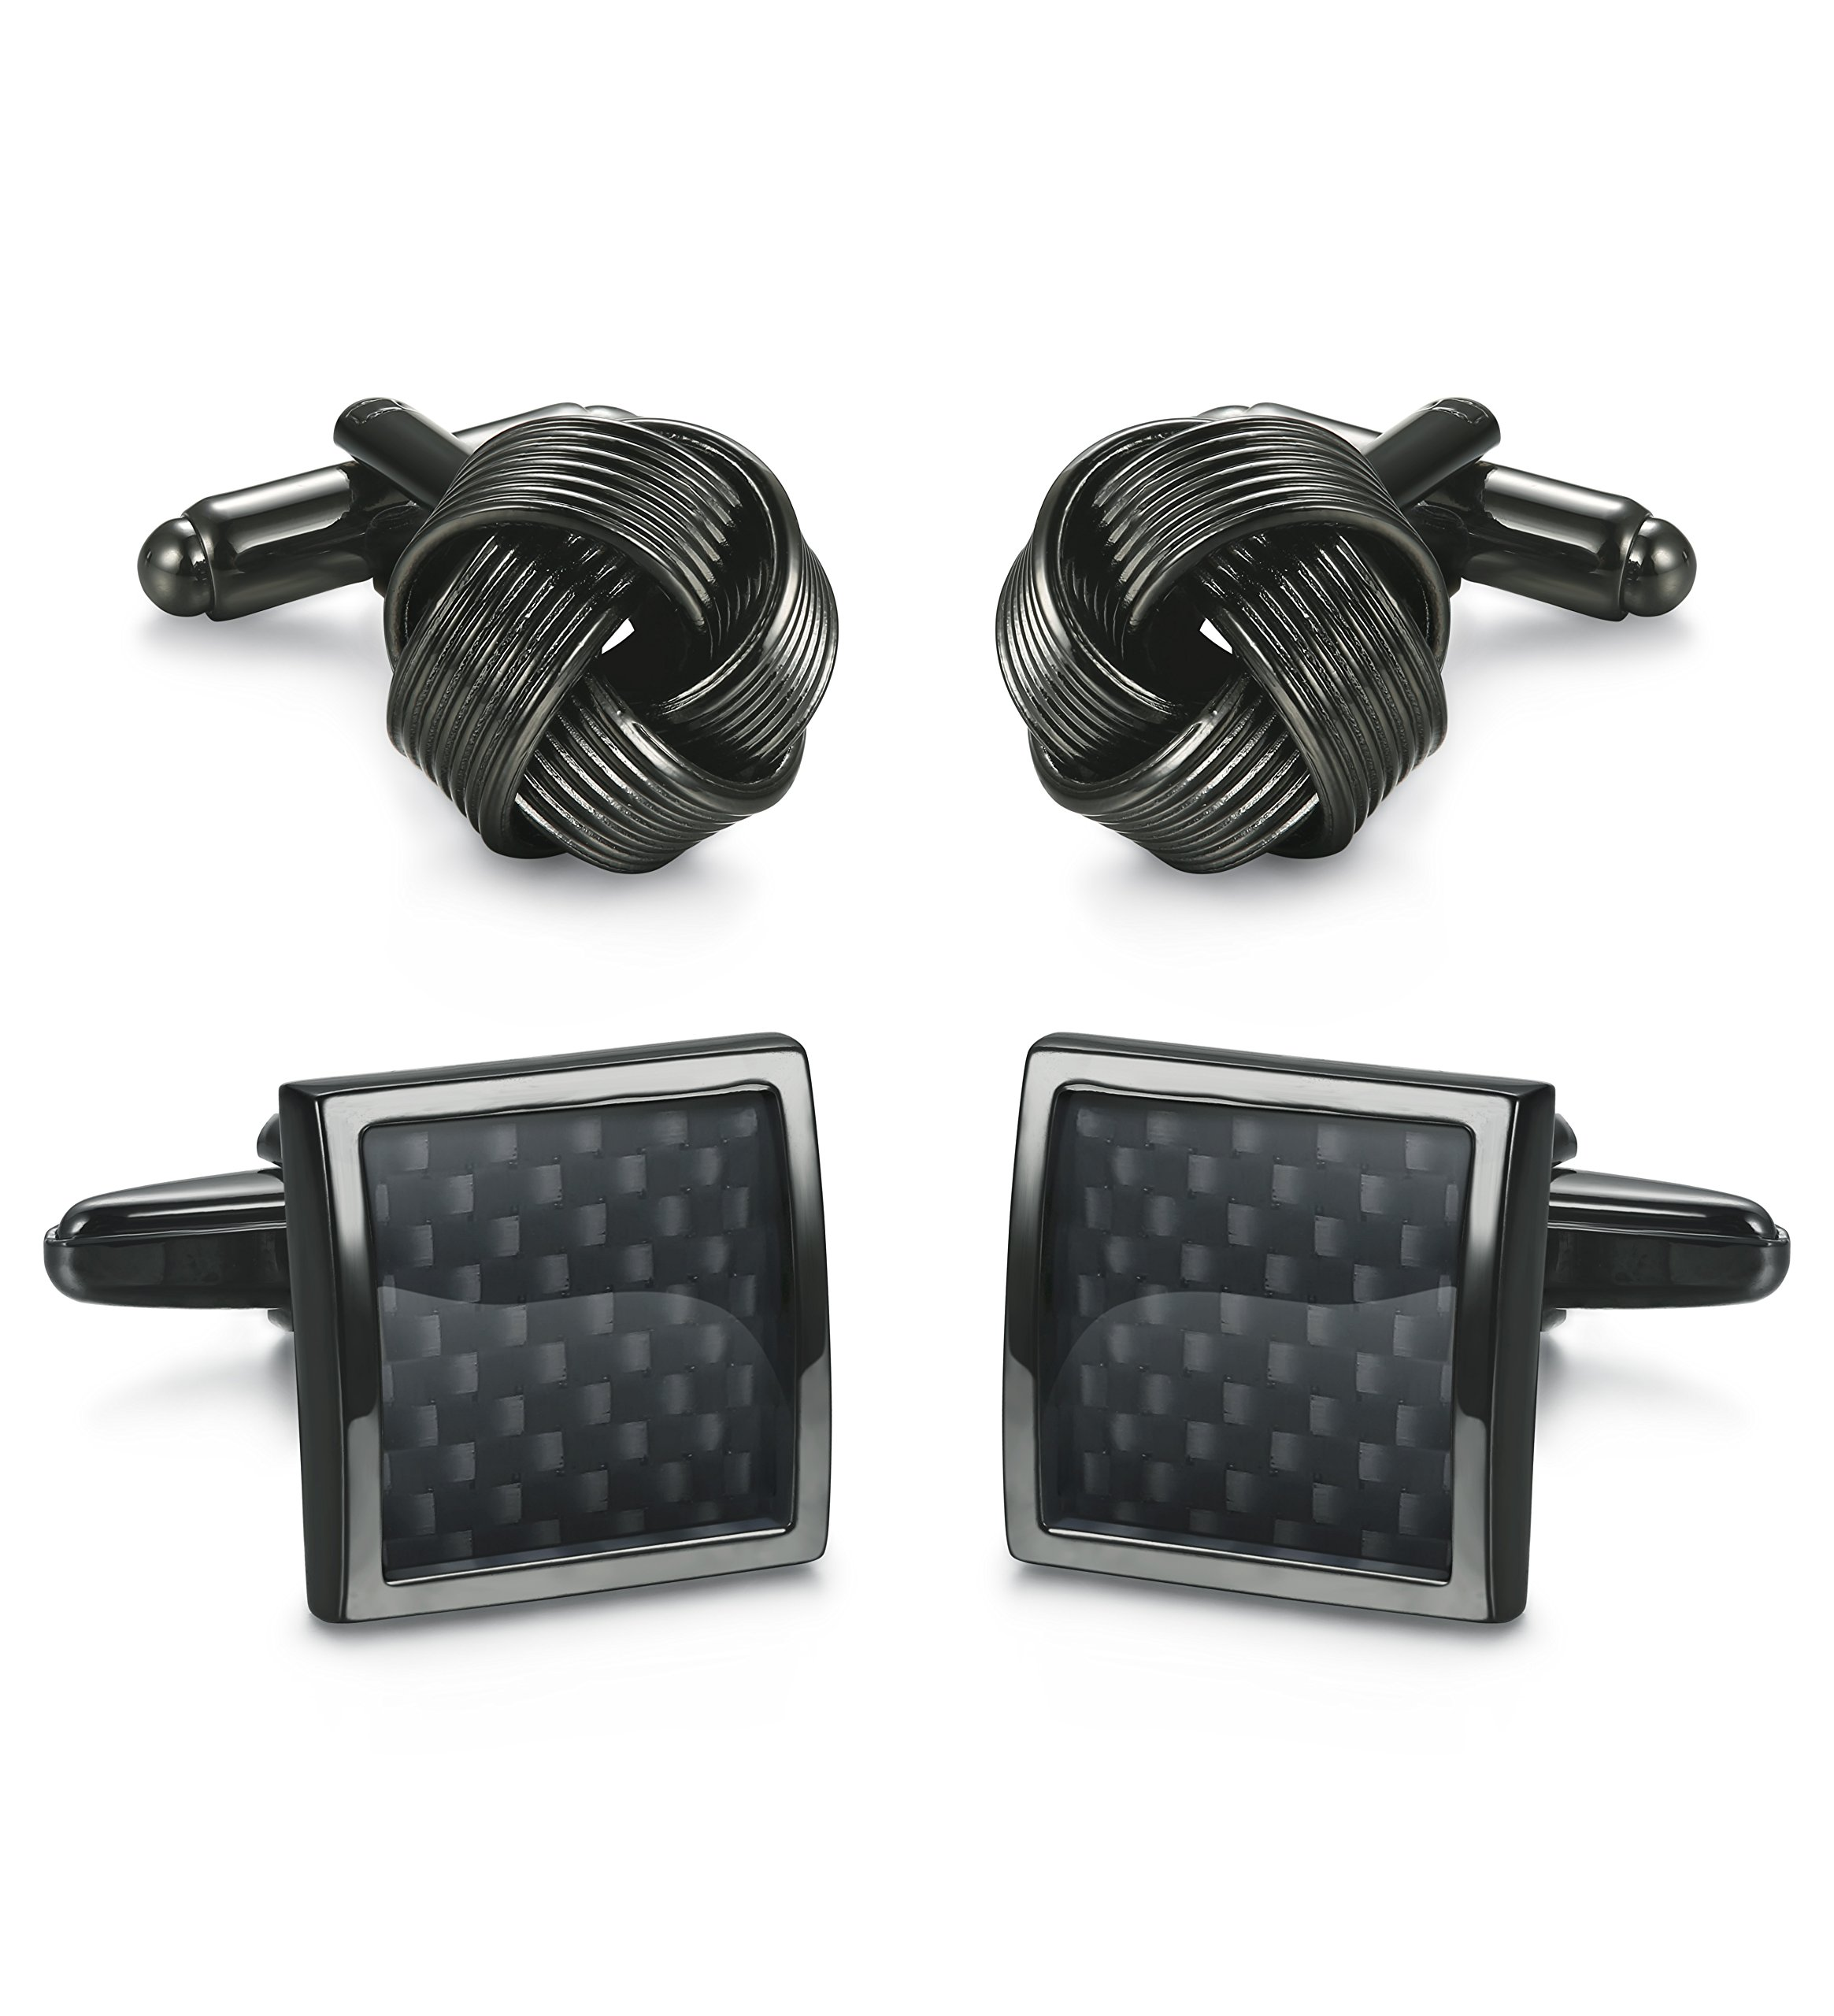 ORAZIO 2 Pairs Mens Classic Cufflinks Men Unique Black Cufflinks for Men Business or Wedding Shirts